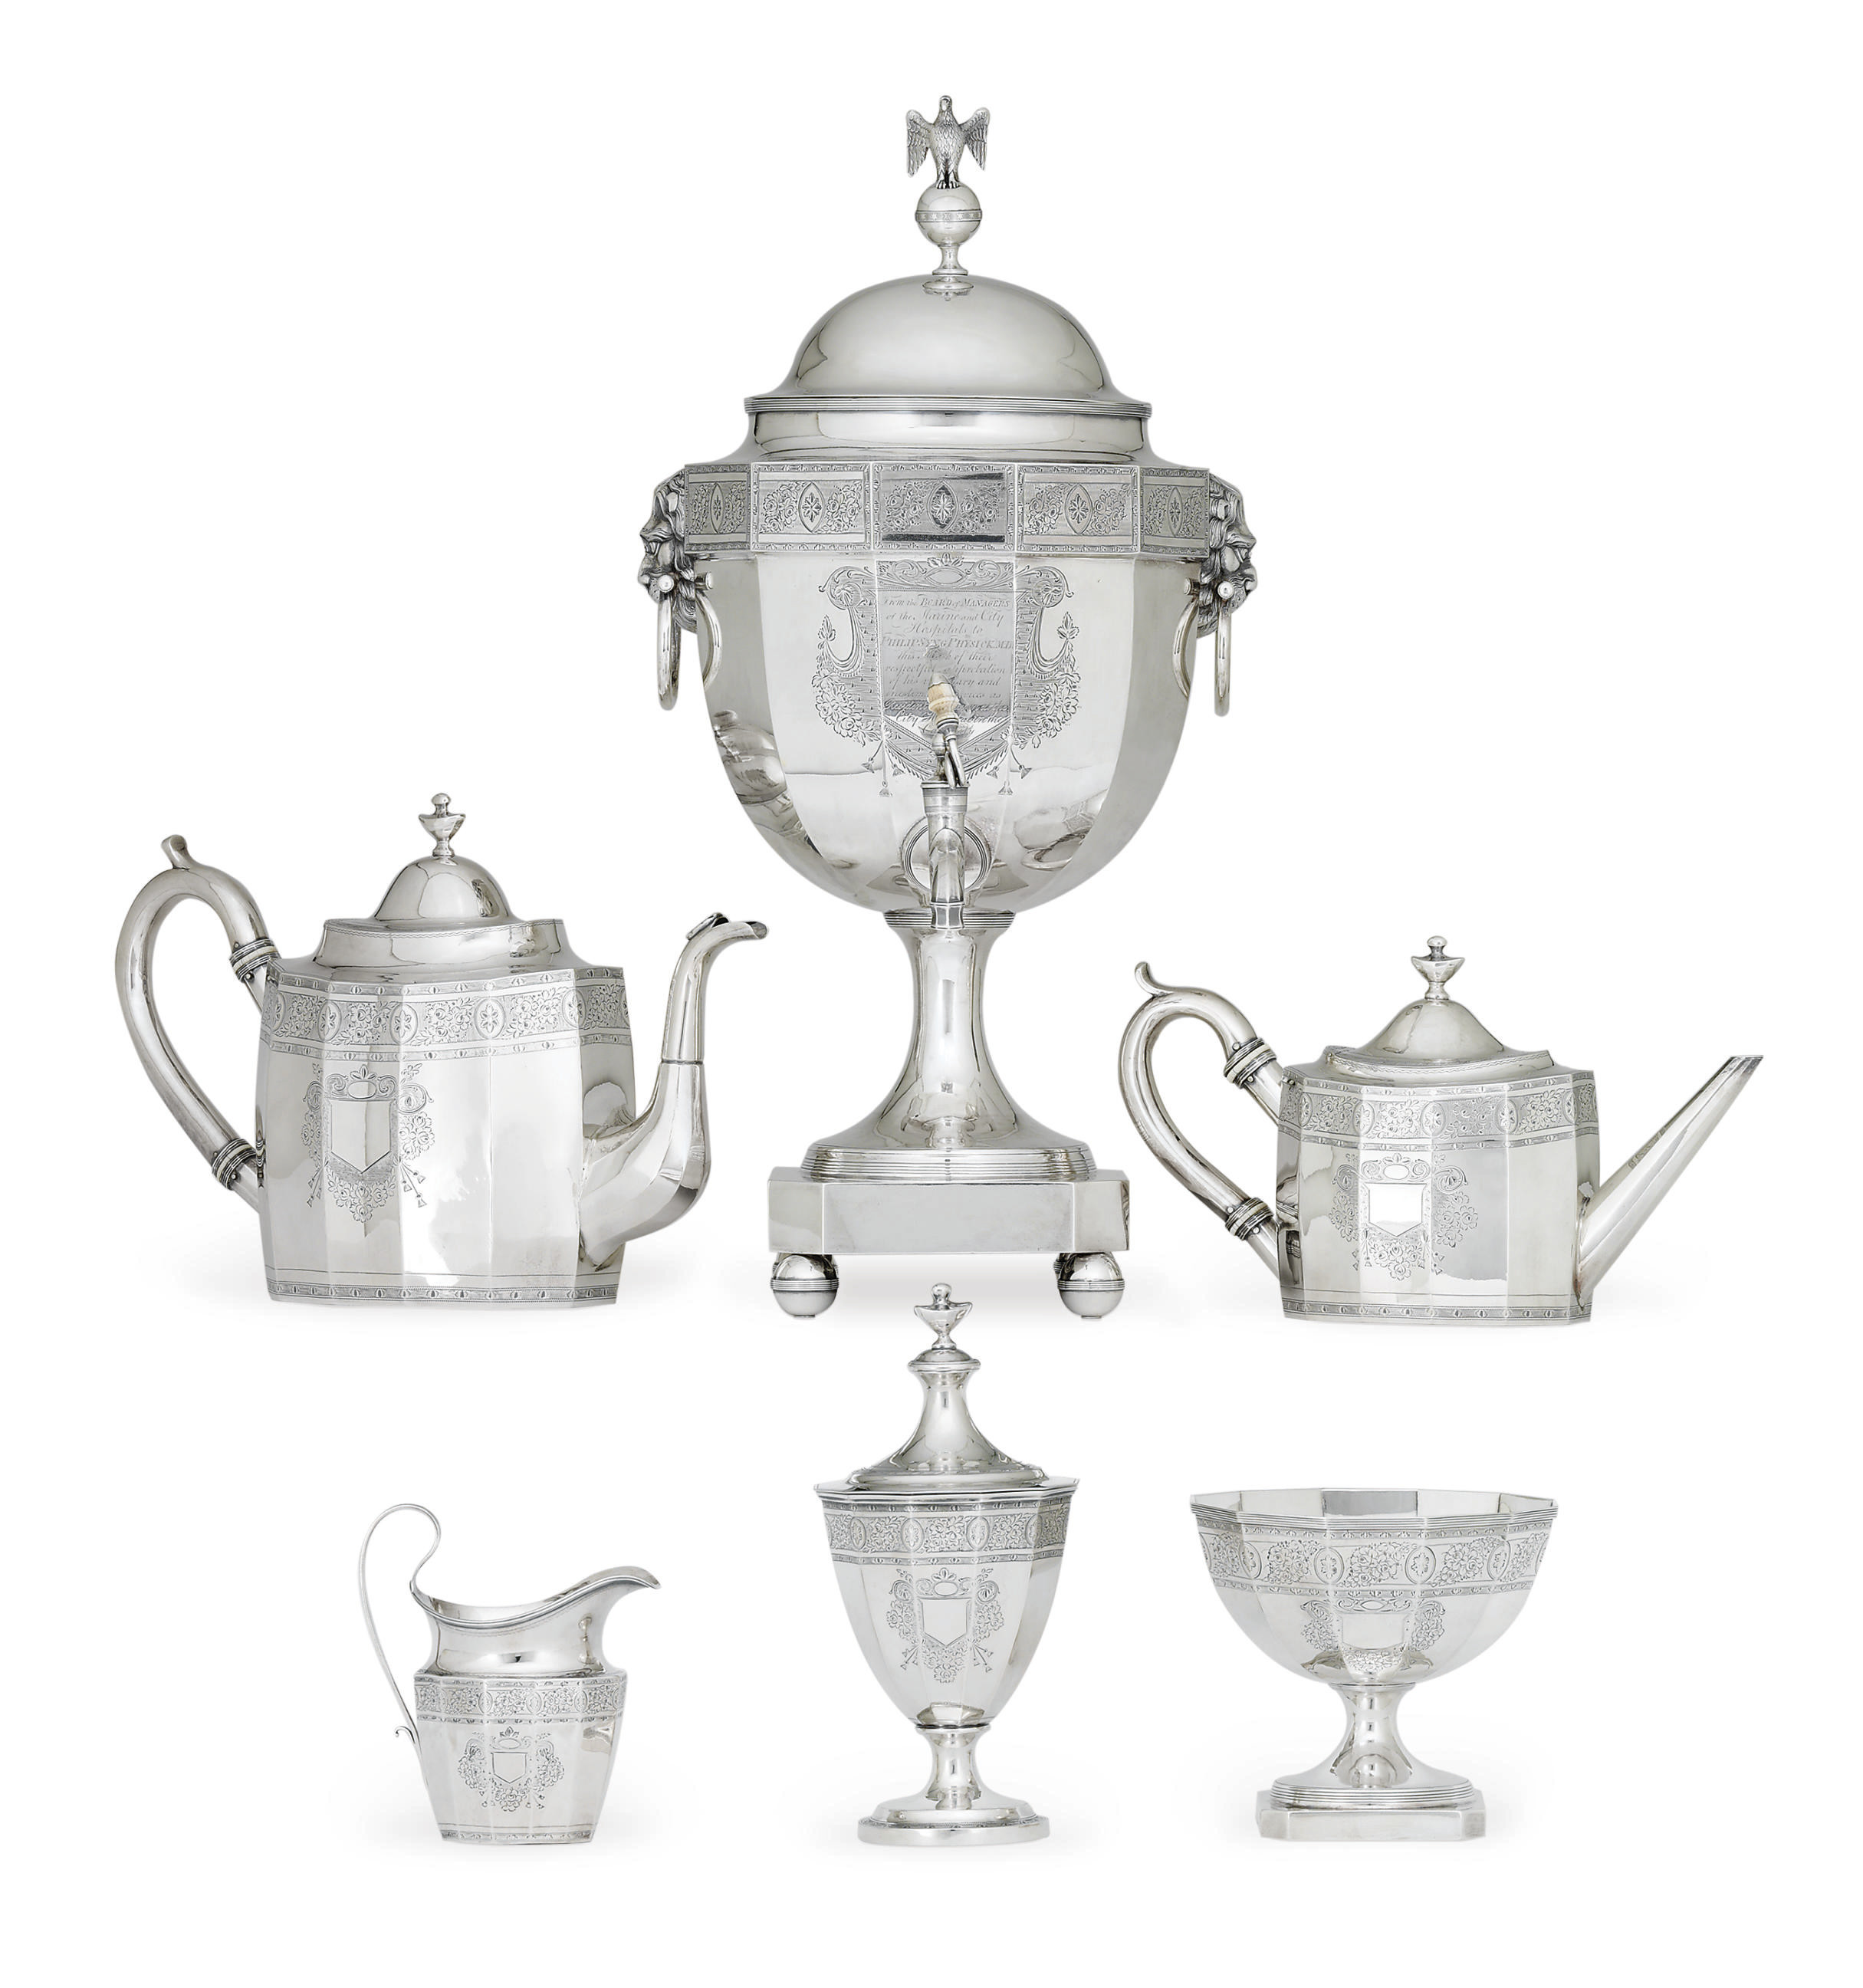 A MAGNIFICENT AMERICAN SILVER TEA URN AND SERVICE PRESENTED TO PHILIP SYNG PHYSICK**